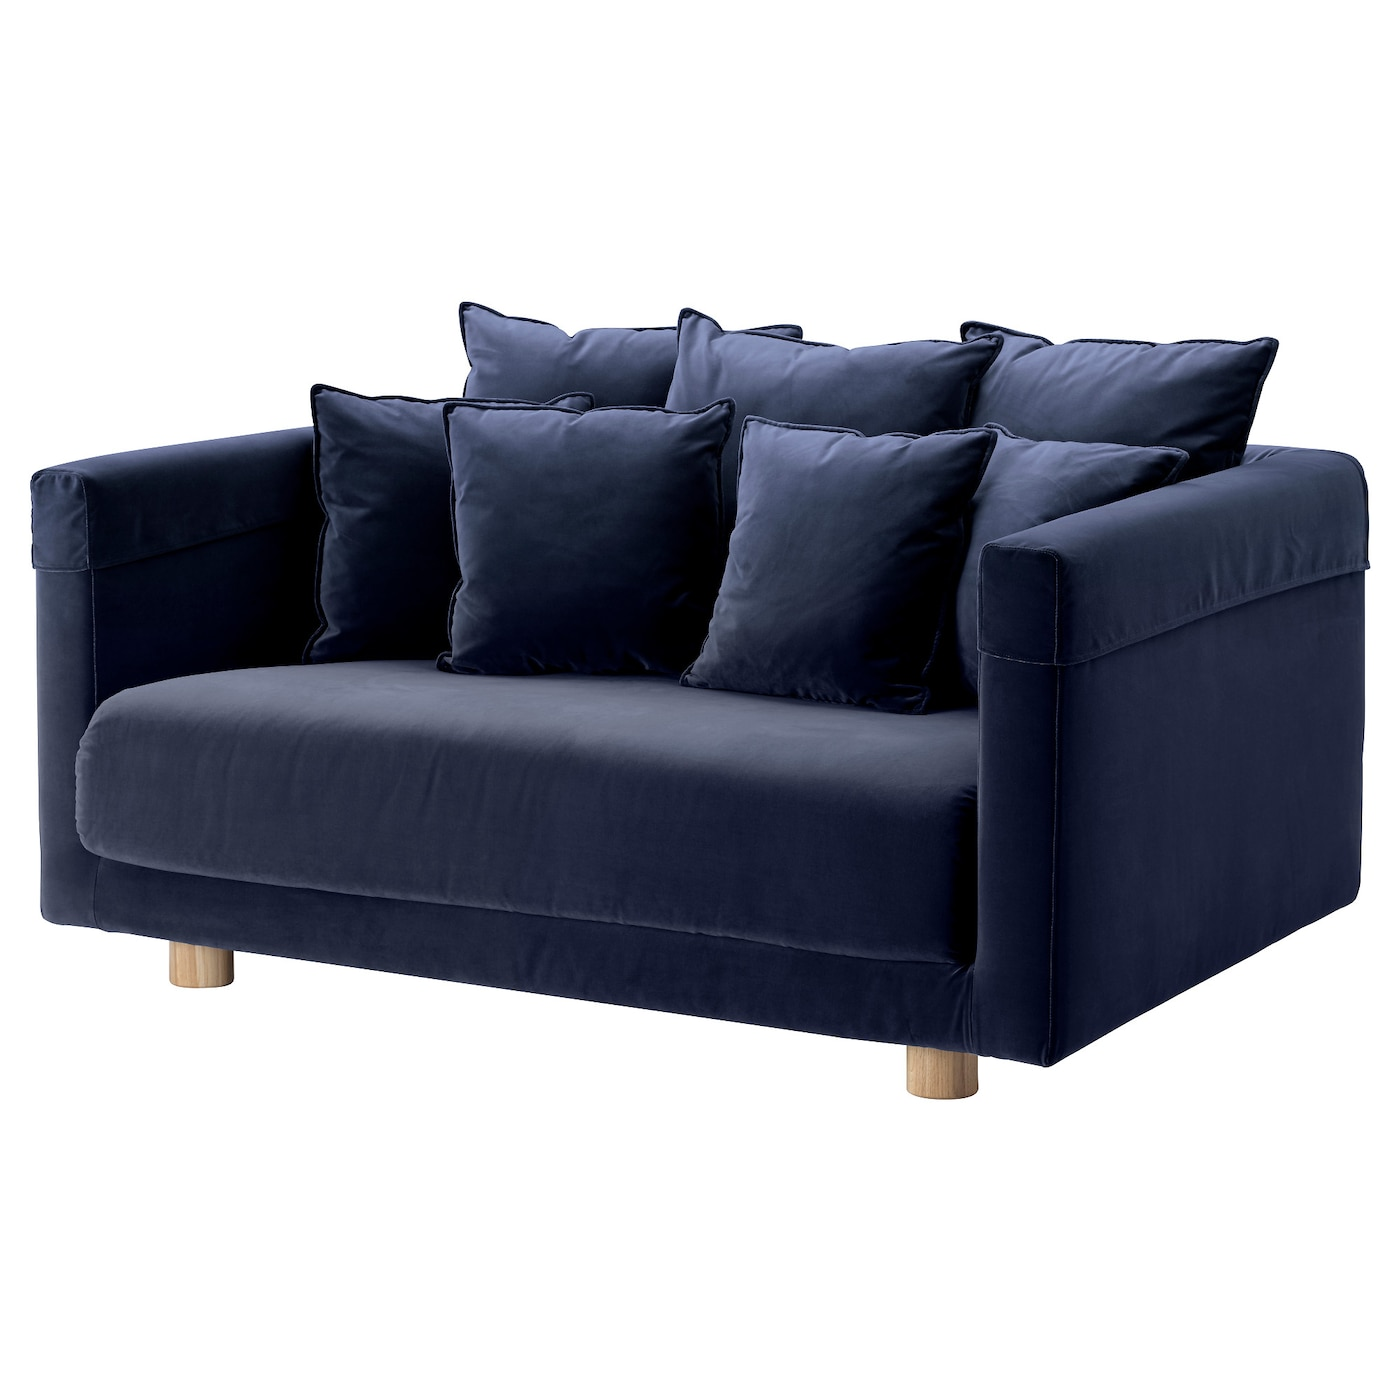 High Quality IKEA STOCKHOLM 2017 Two Seat Sofa 10 Year Guarantee. Read About The Terms In